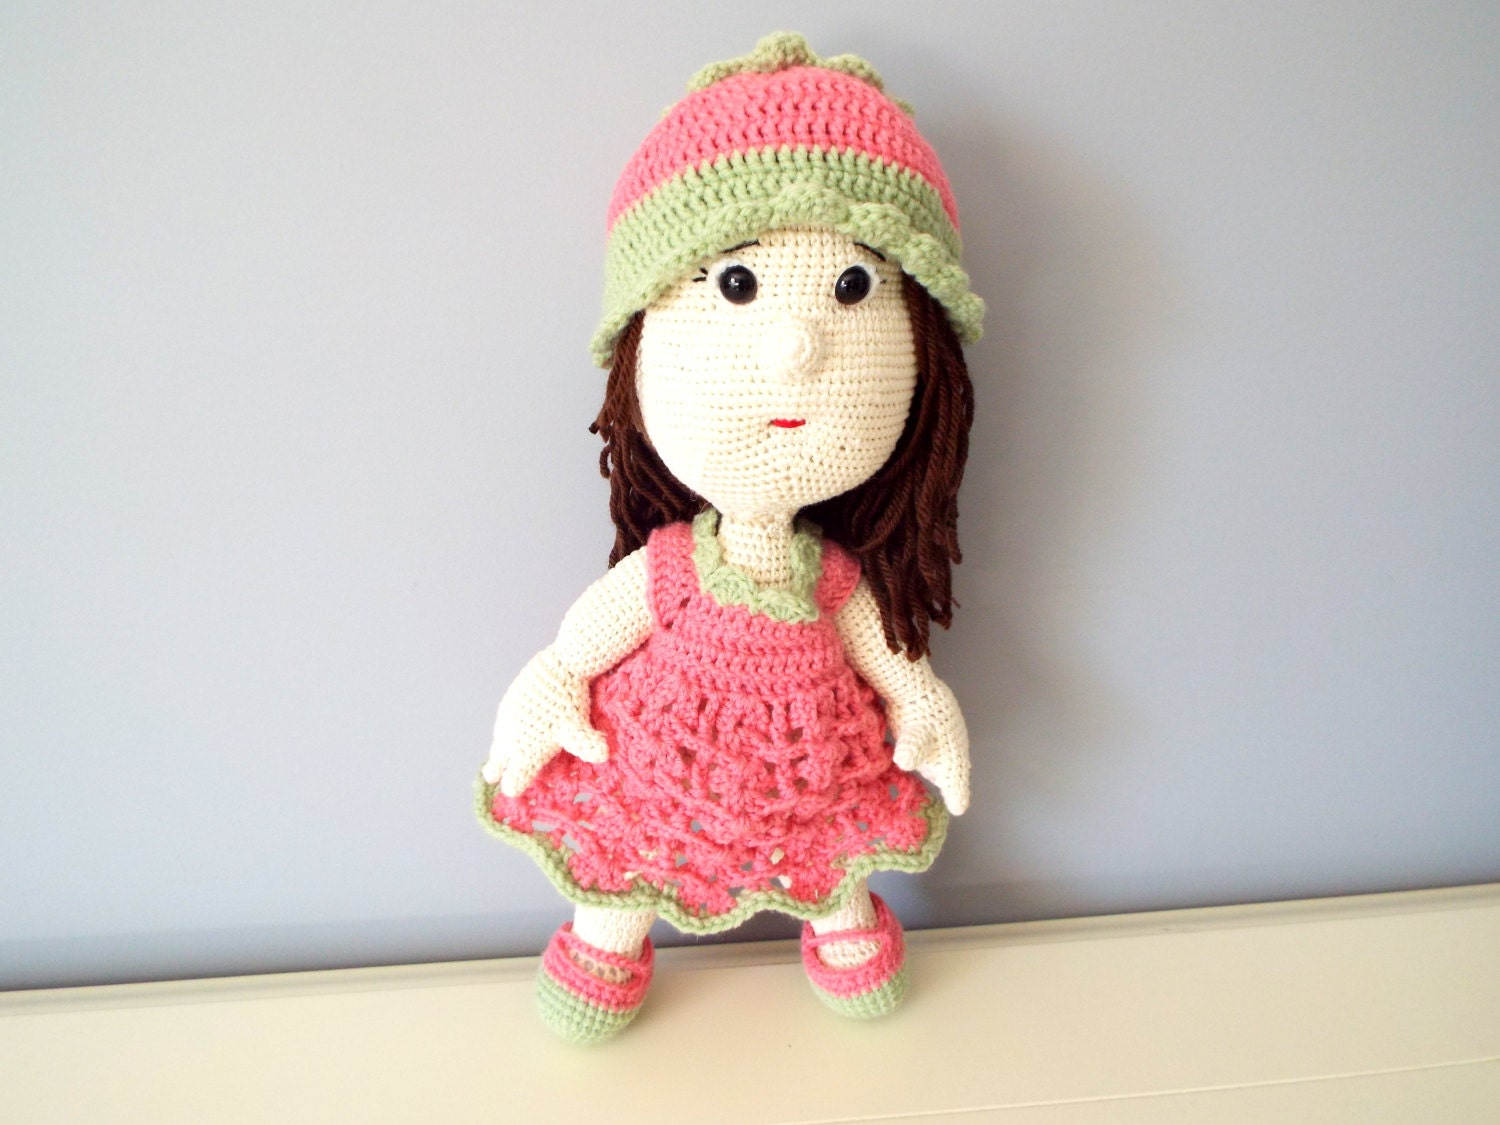 Cute Amigurumi Ideas : Crochet pink doll Kids Toys Baby shower Home decor Knitted ...